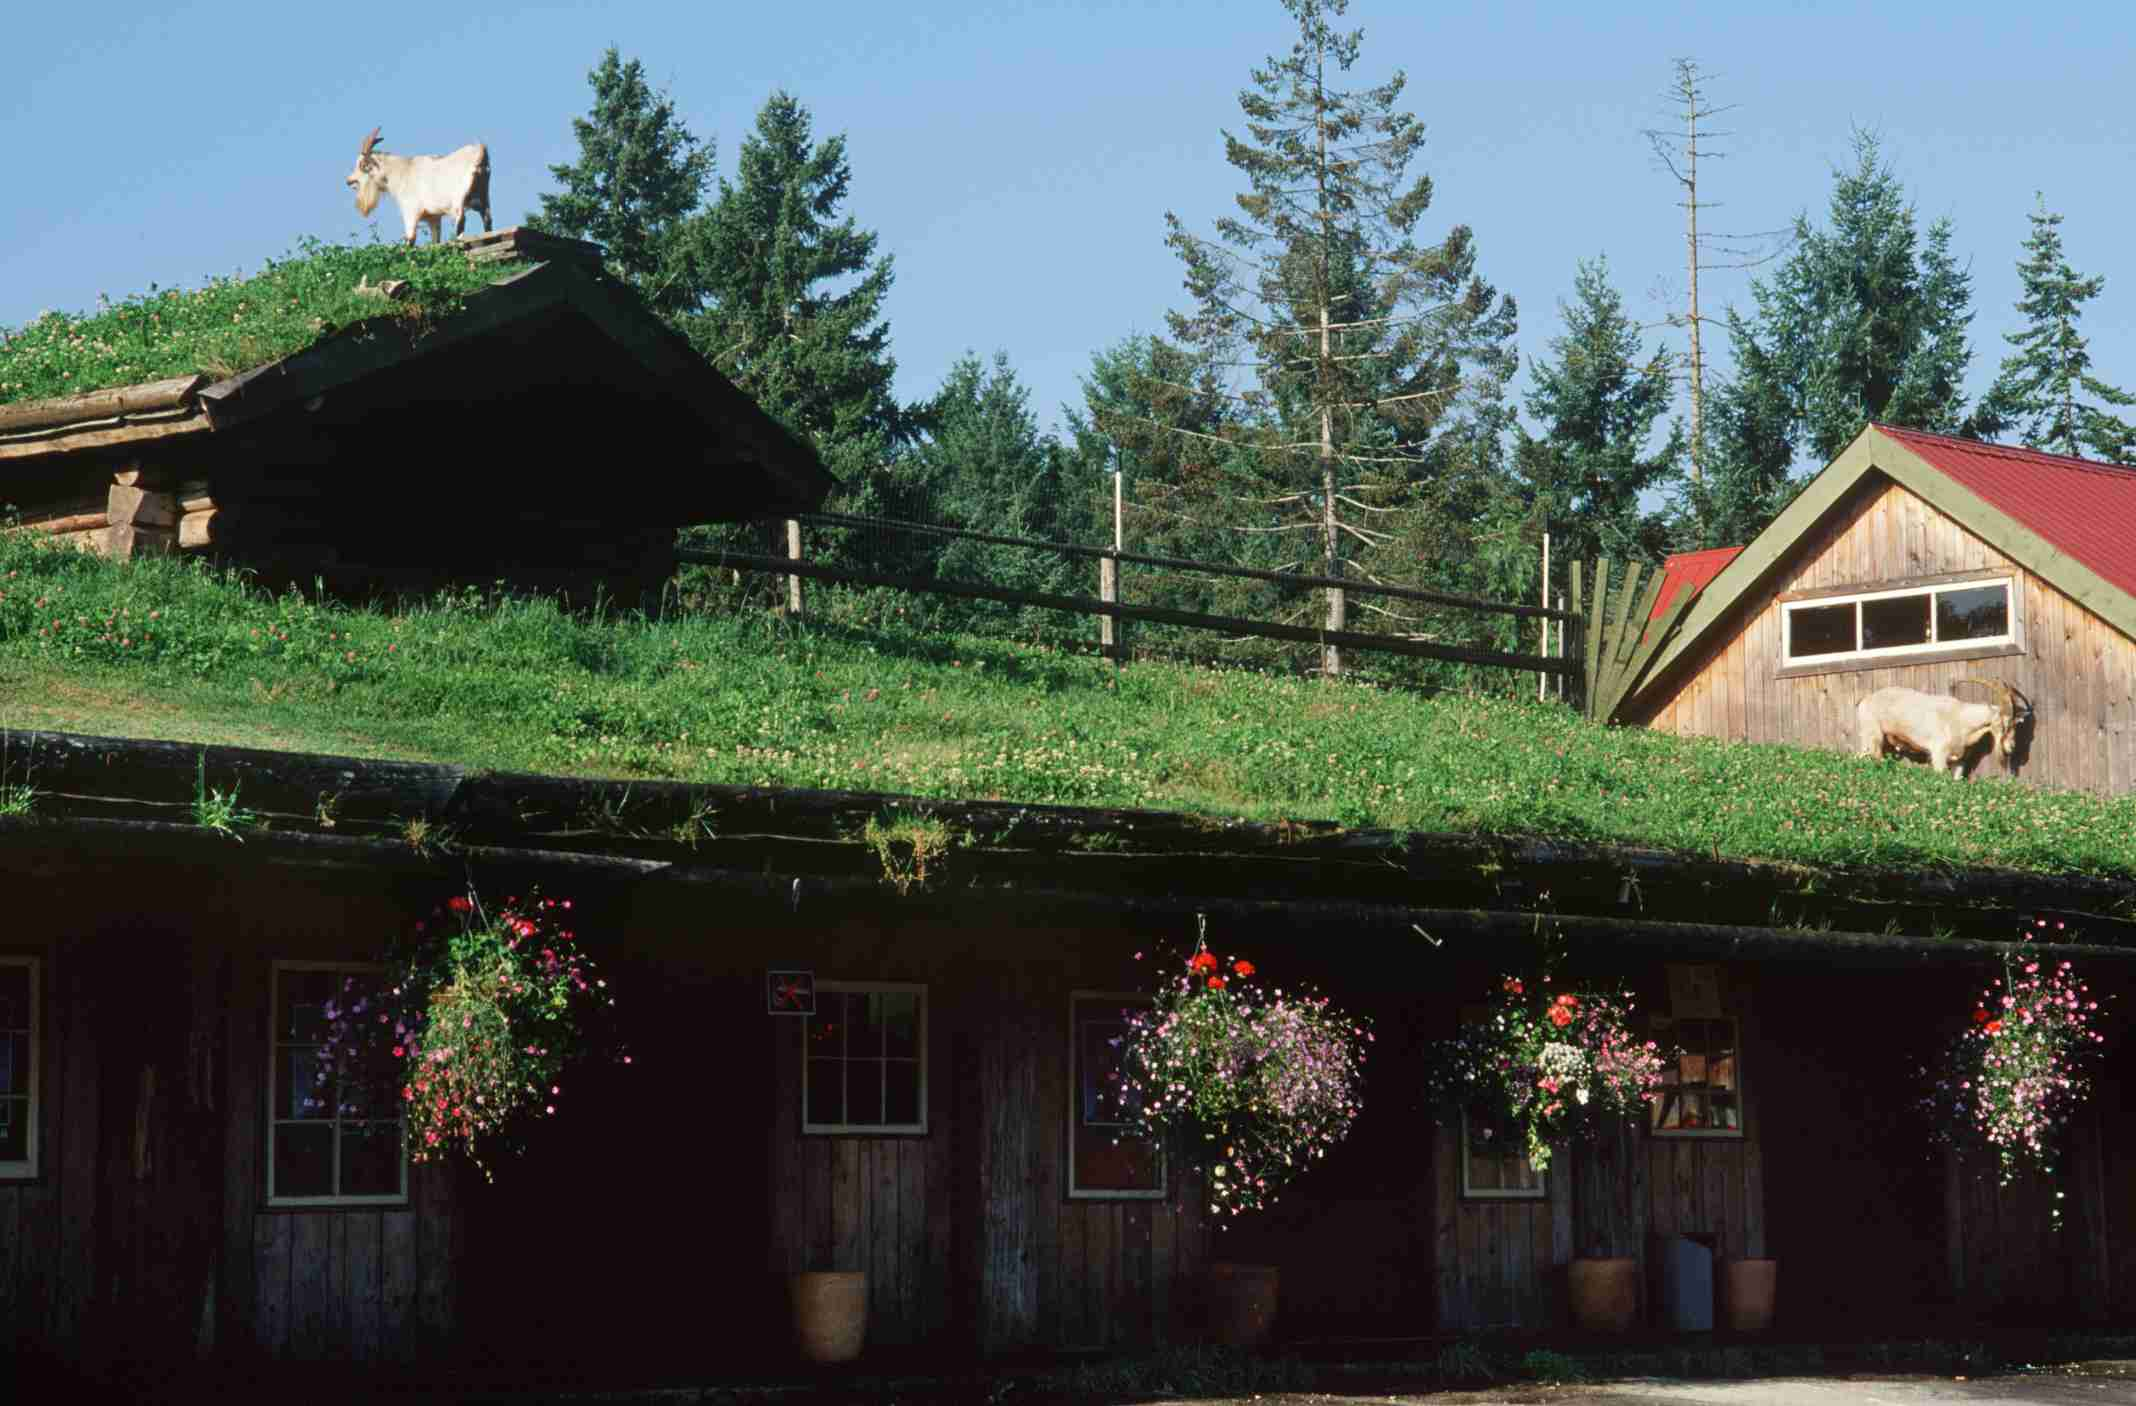 Goats grazing on its roof of the Old Country Market on Vancouver Island, Canada